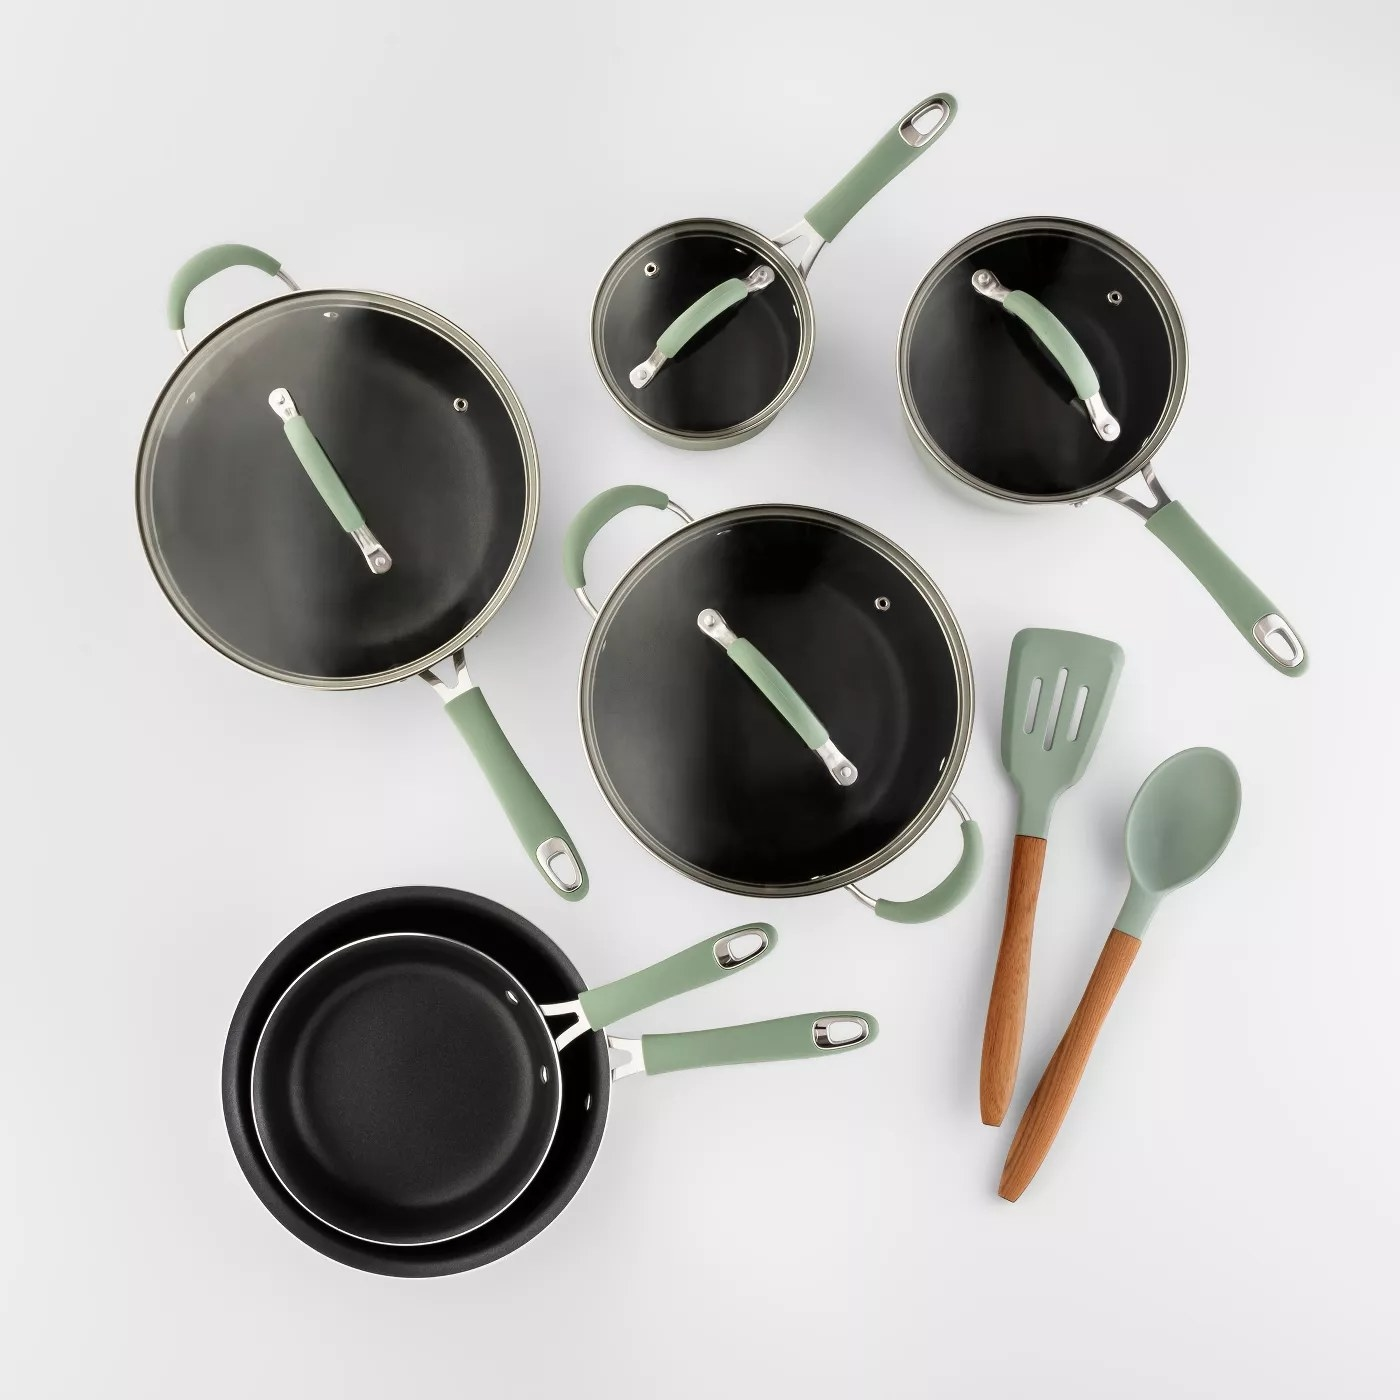 The complete Cravings cookware set